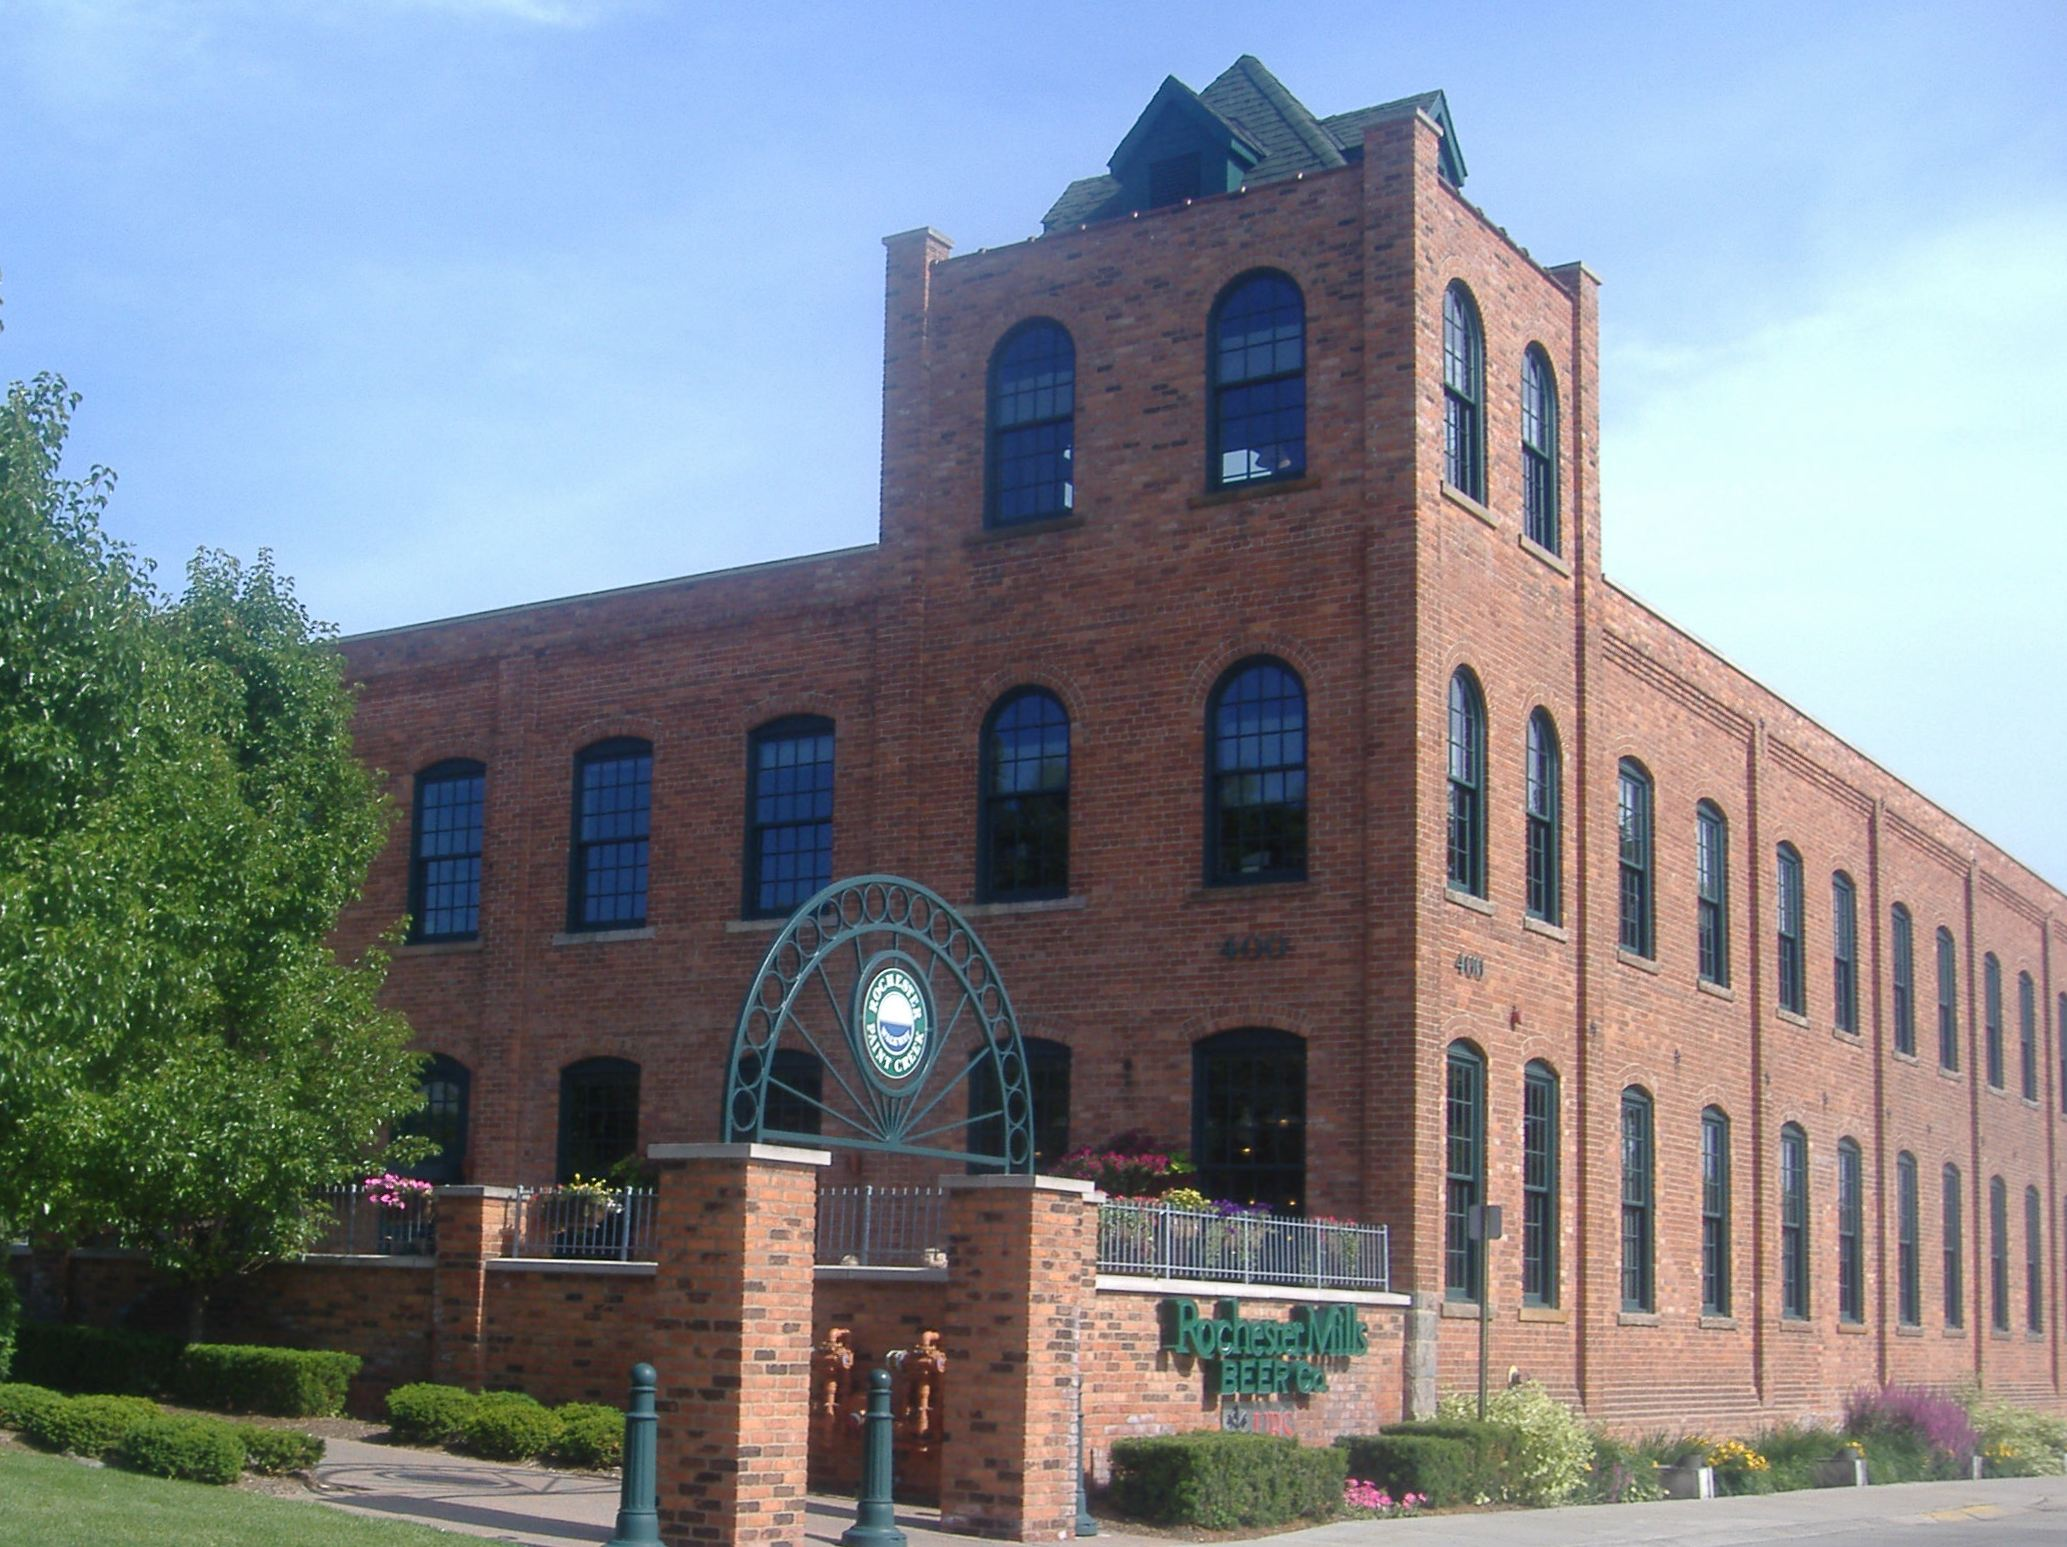 Rochester Michigan Western Knitting Mills.JPG